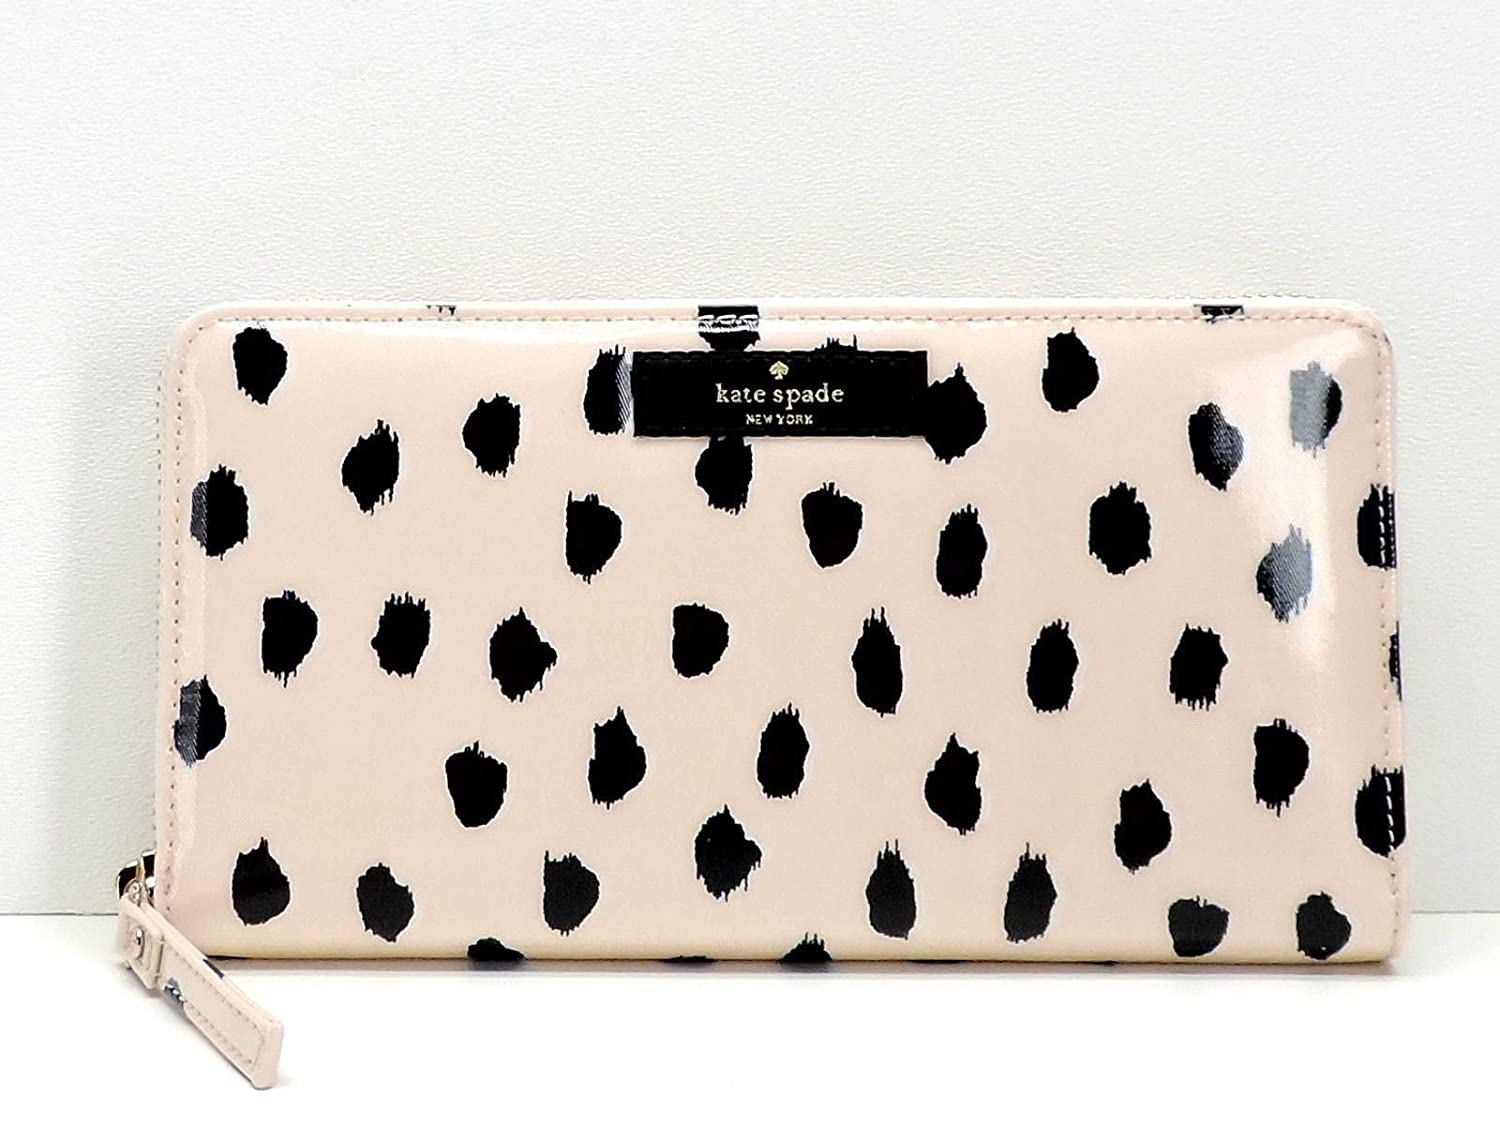 Kate Spade New York ACCESSORY レディース カラー: ピンク